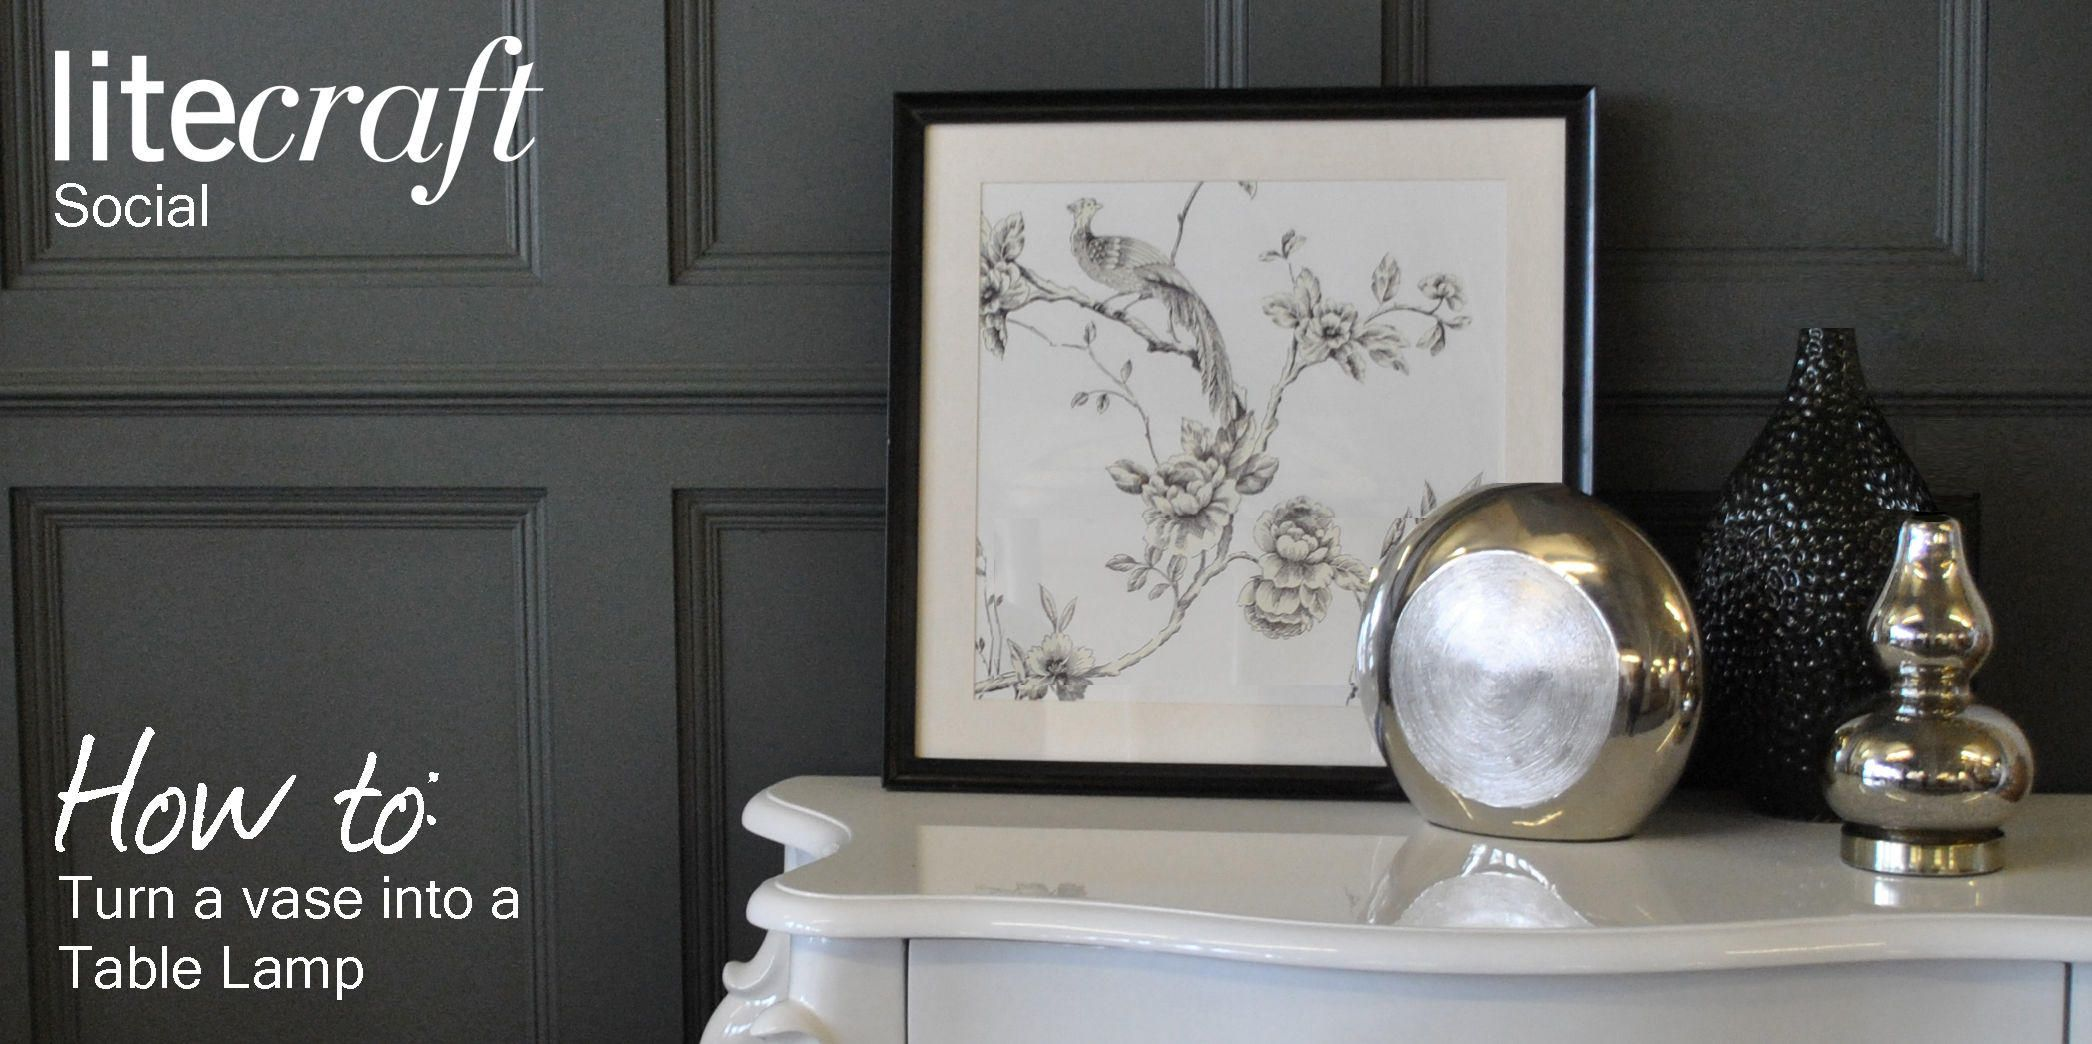 How to: Turn a Vase into a Table Lamp - Litecraft